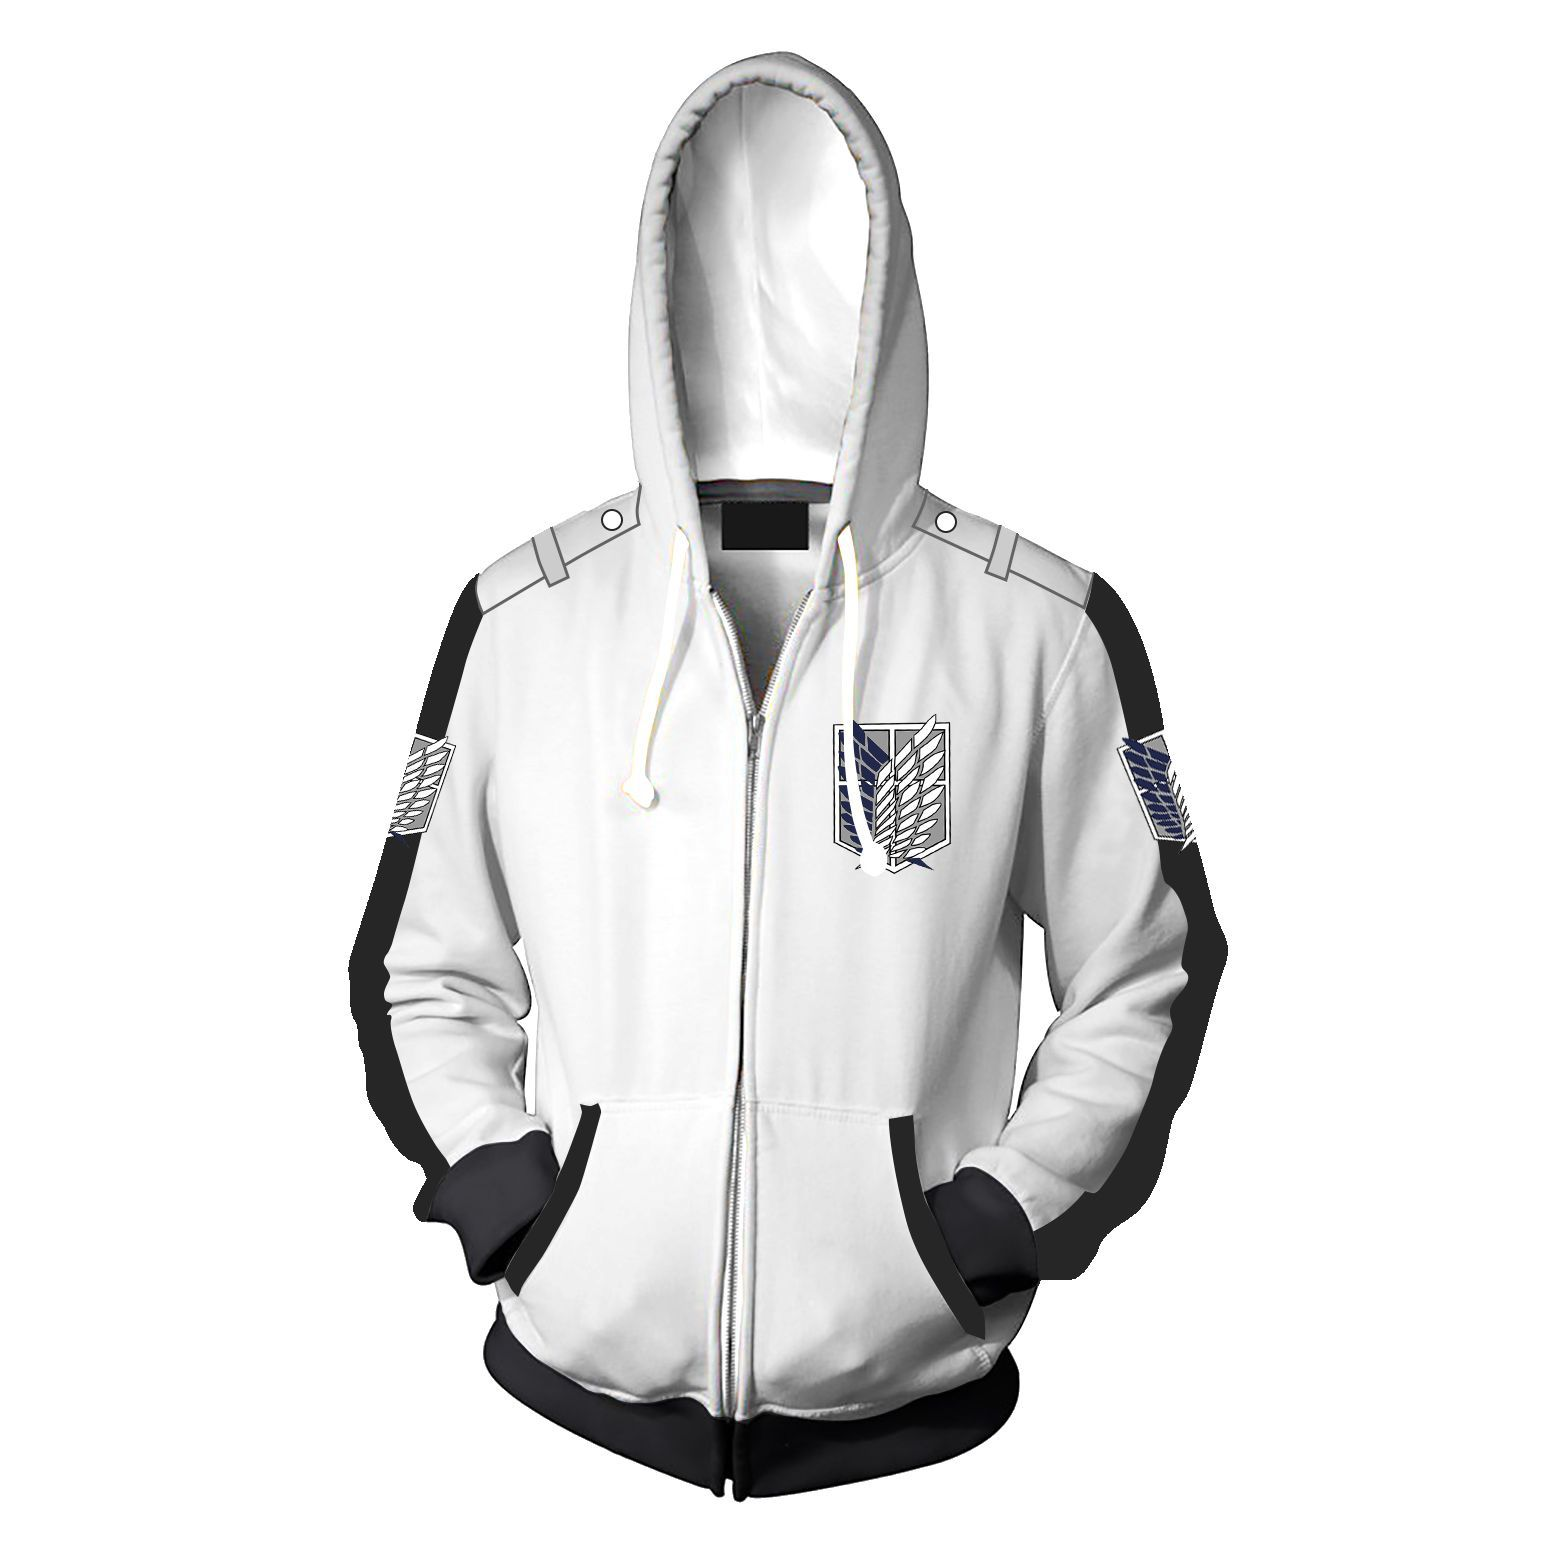 Anime Attack on Titan Hoodie Coat Sweatshirt Cosplay Costume Zipper Jacket Hot